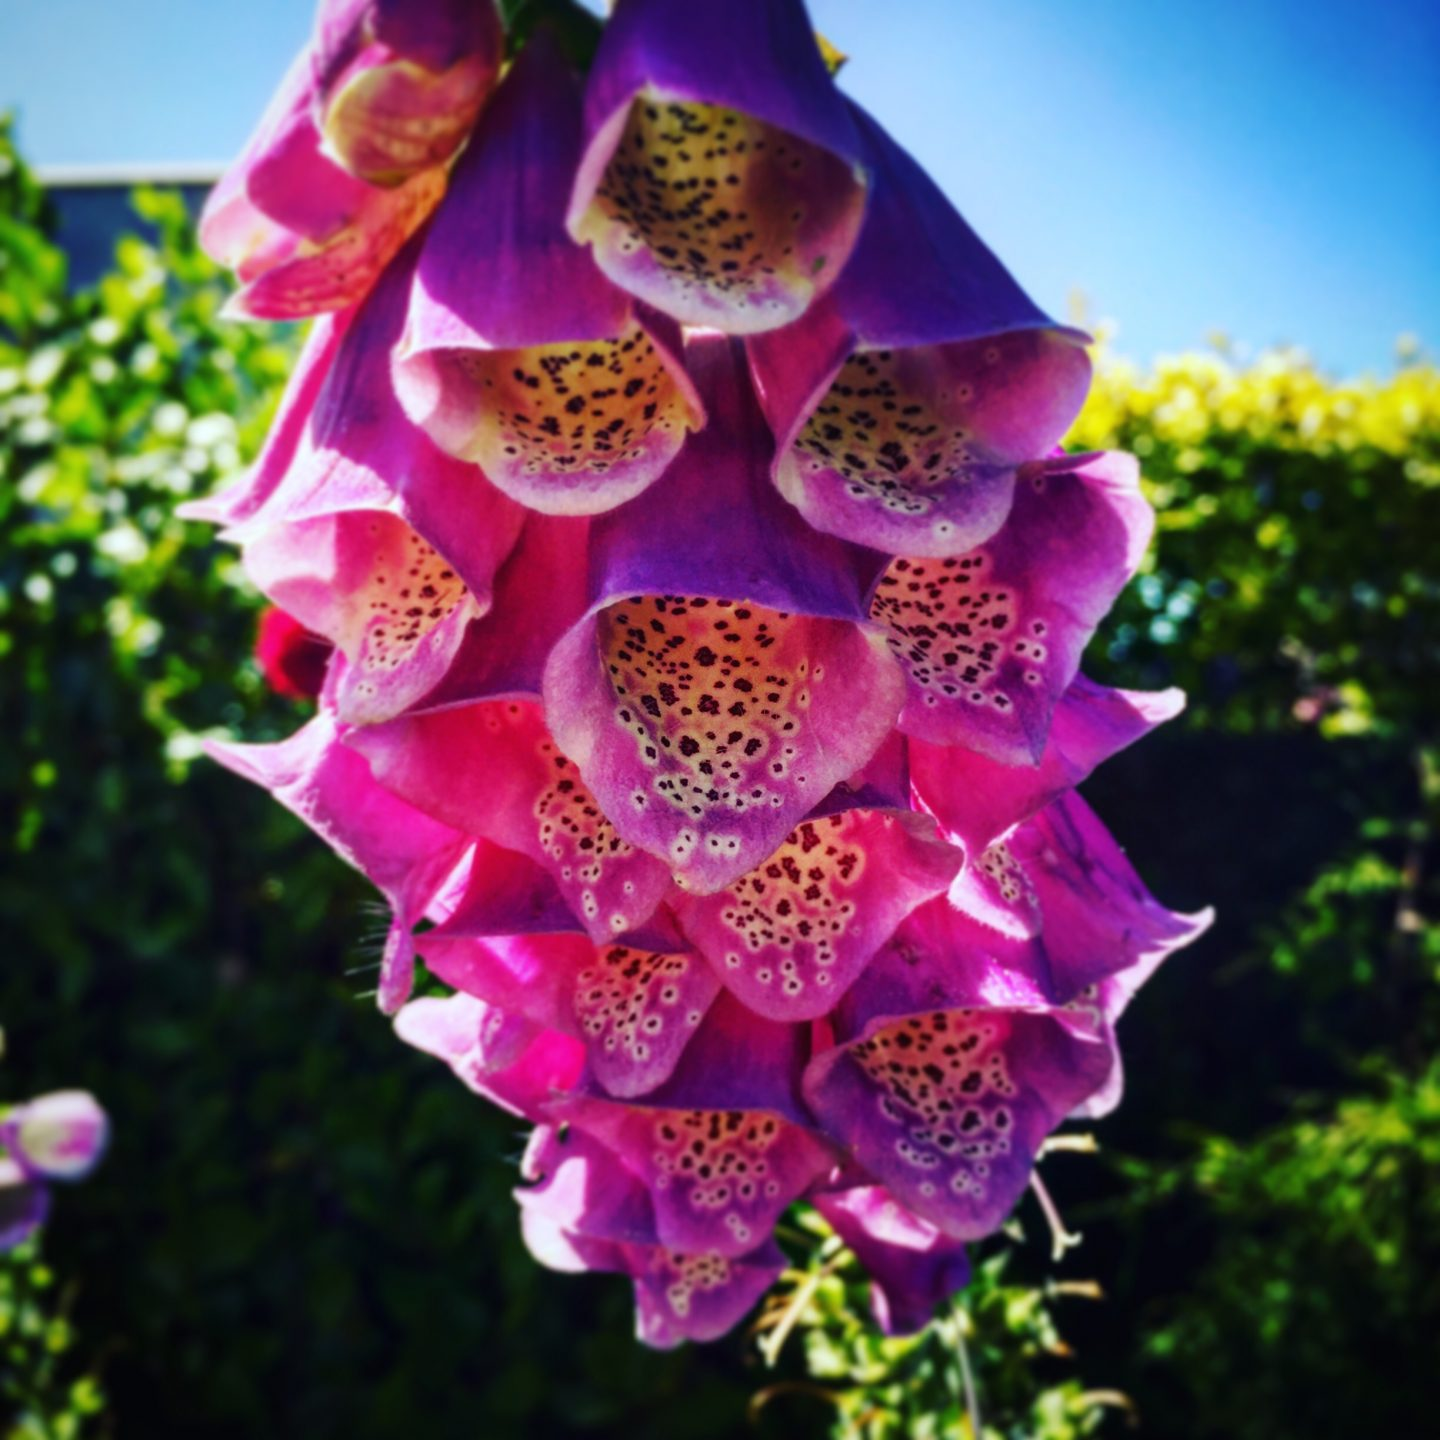 #MySundayPhoto - For The Love Of Foxgloves